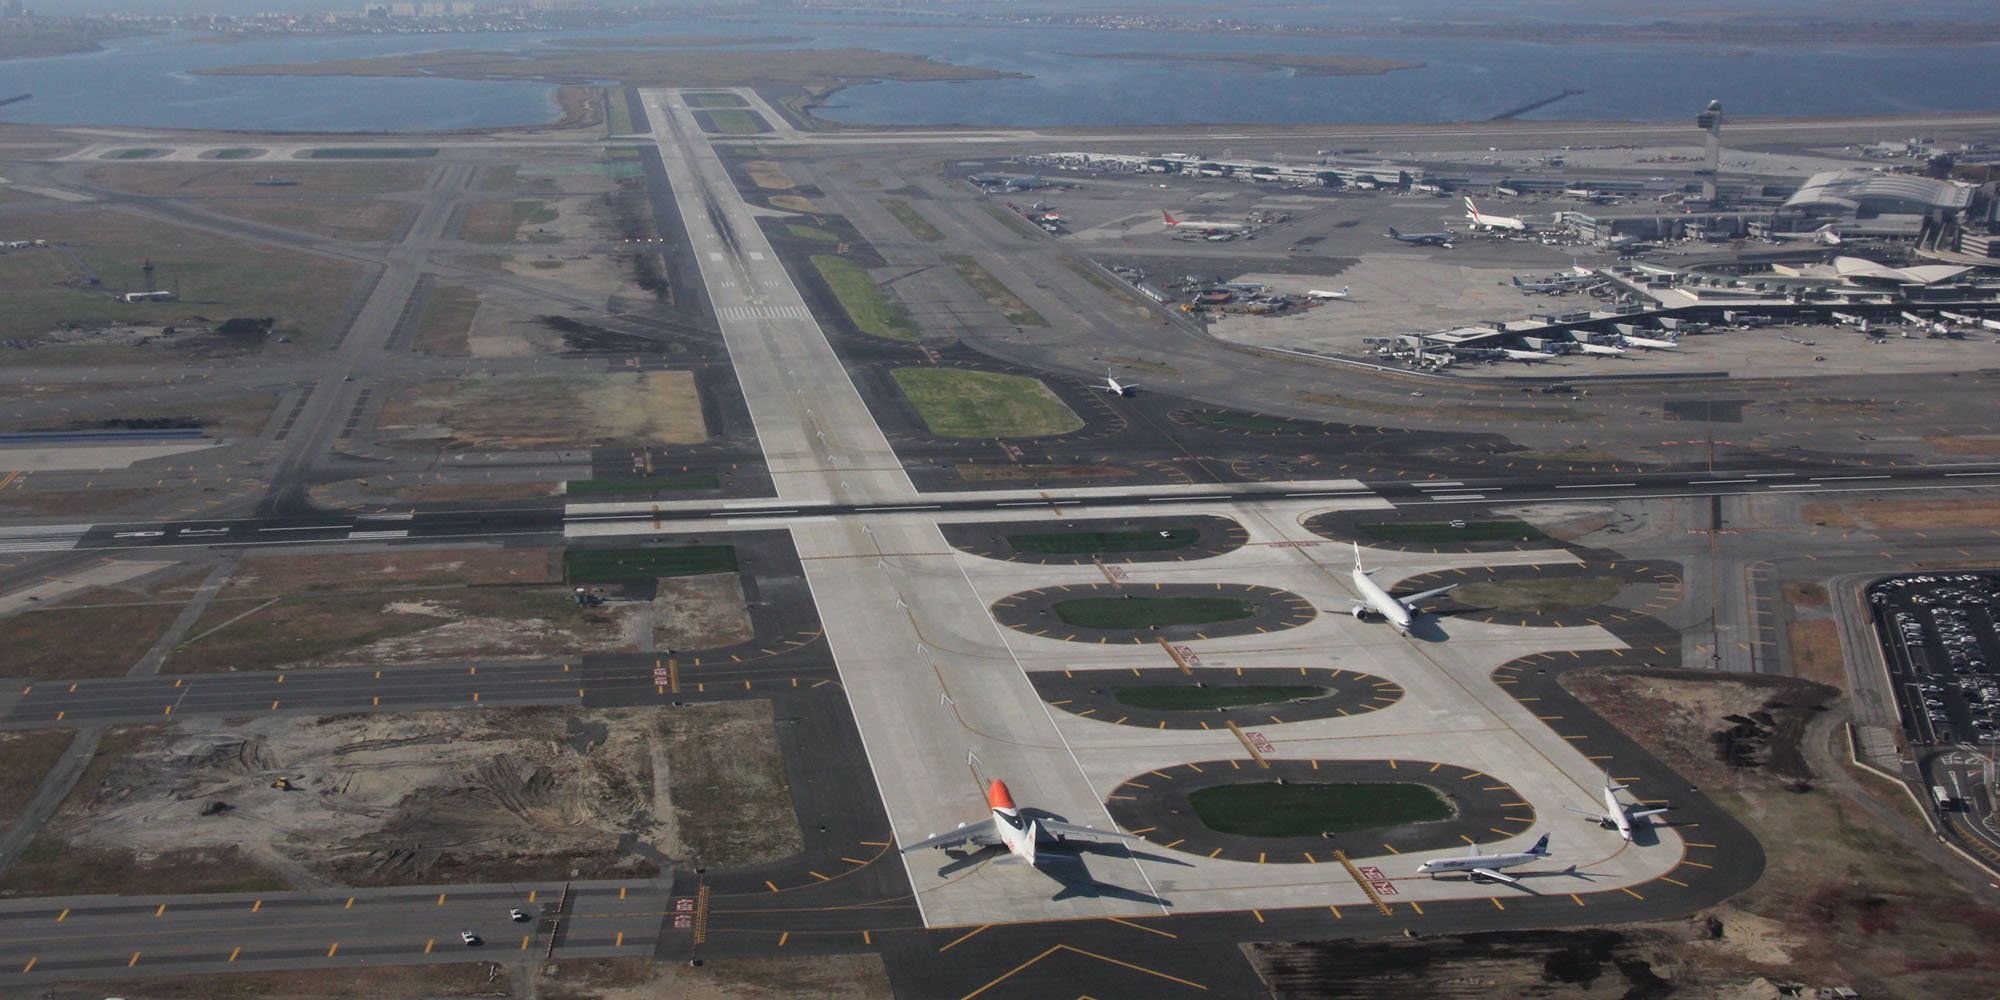 Lufthansa flight diverted to New Yorks JFK Airport due to